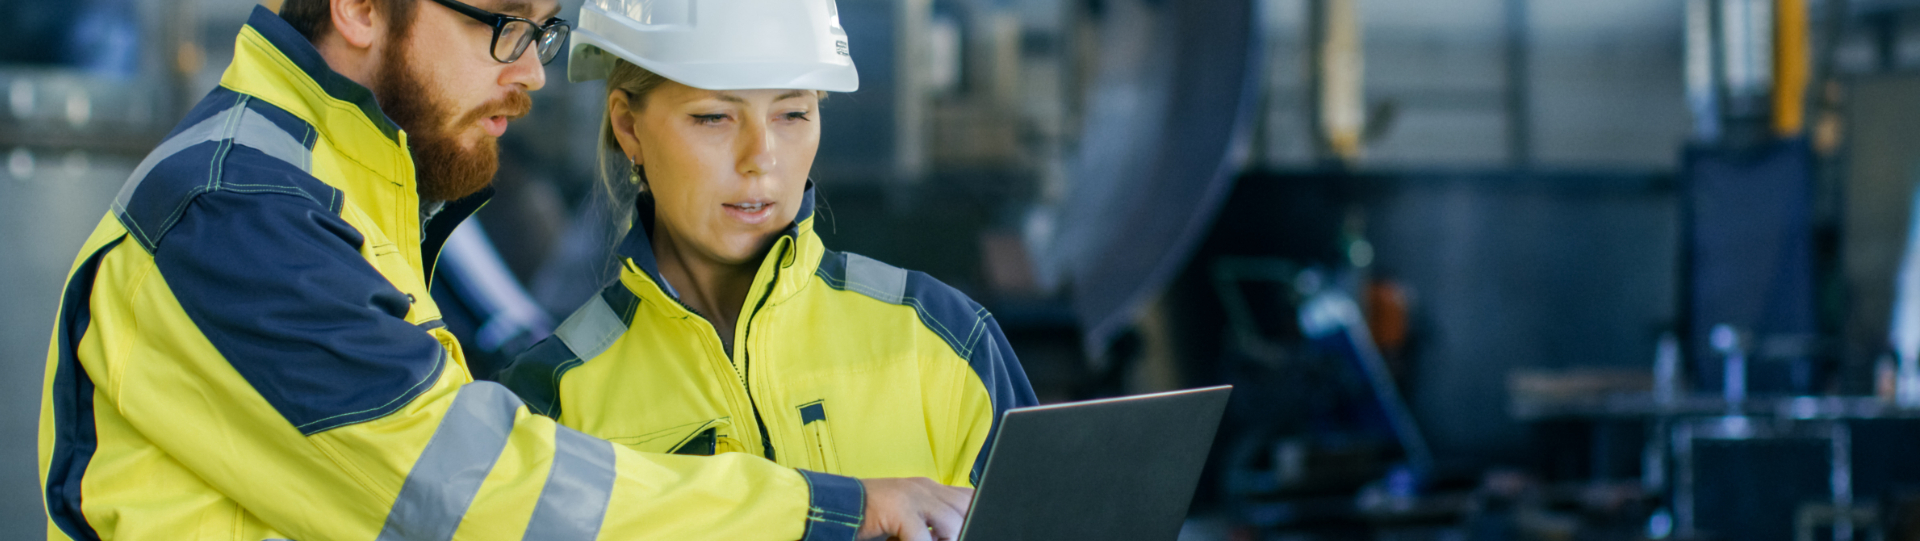 Man and Women Engineer Review Mobil Serv Laptop in Wear house